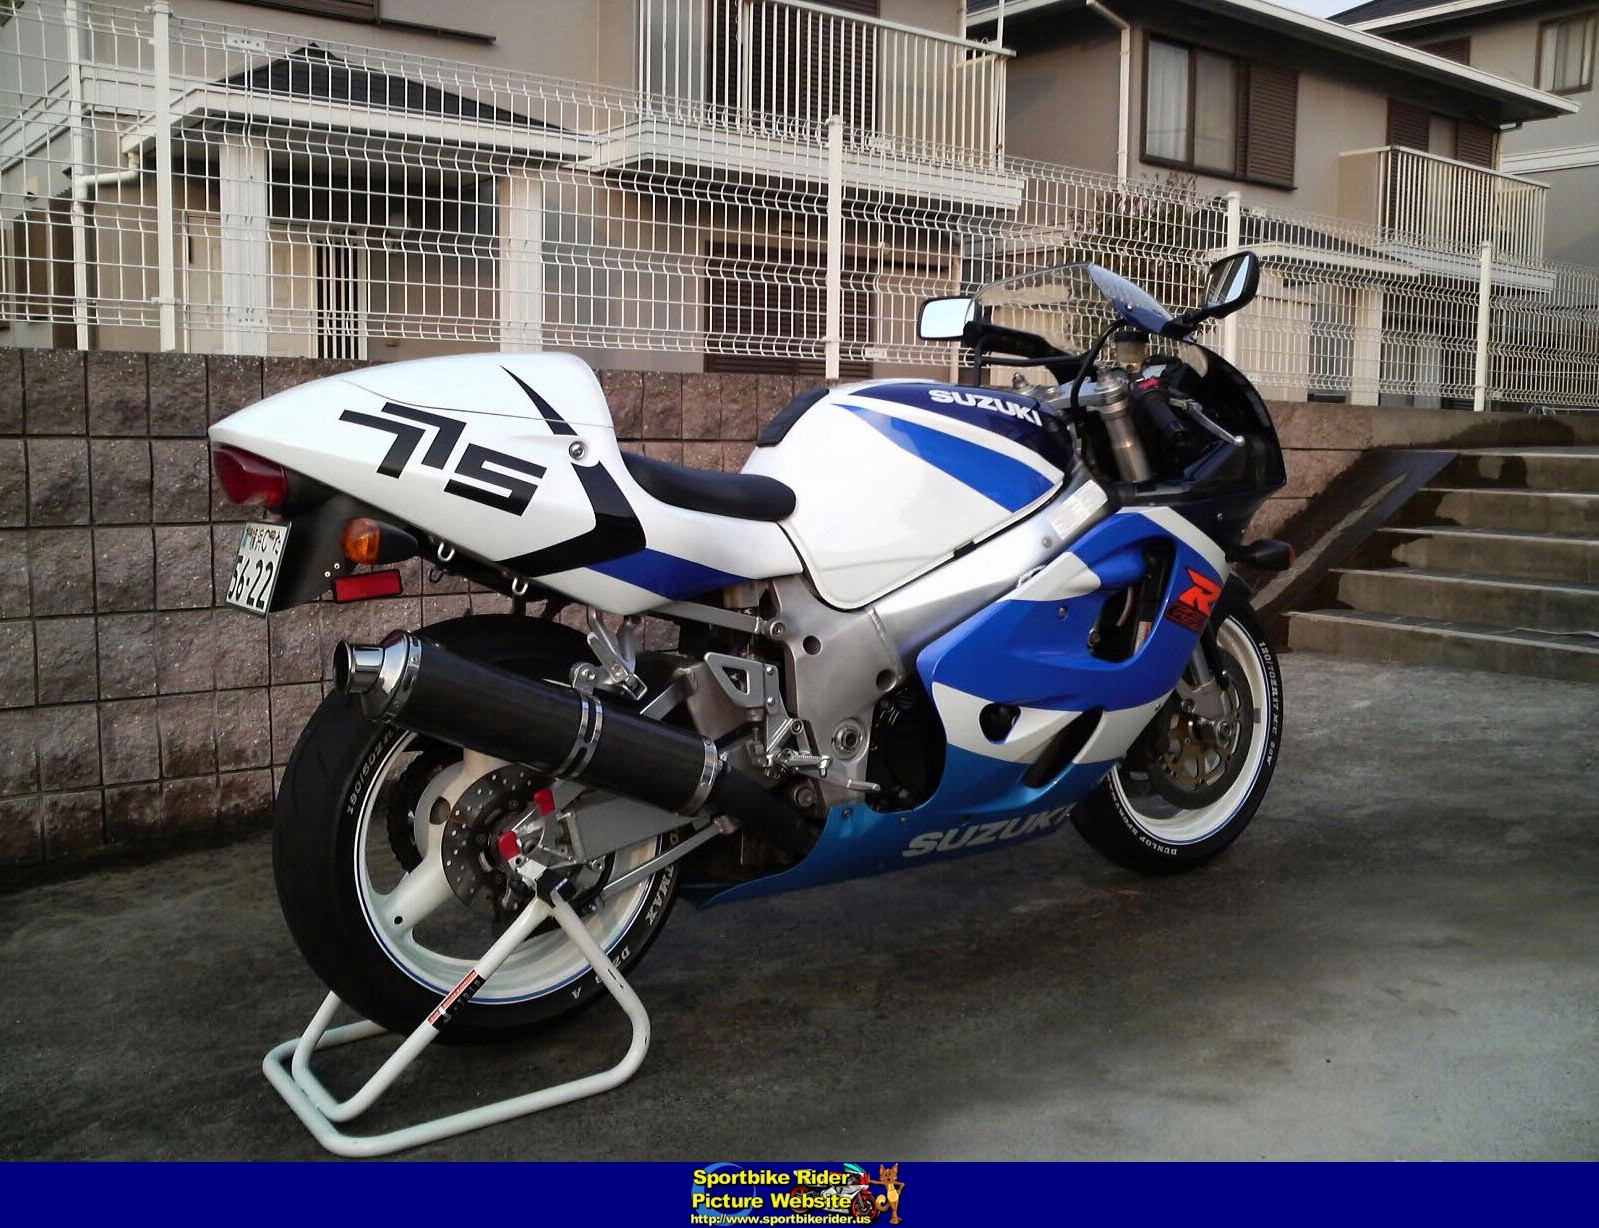 1999 suzuki gsx r 750 pics specs and information. Black Bedroom Furniture Sets. Home Design Ideas